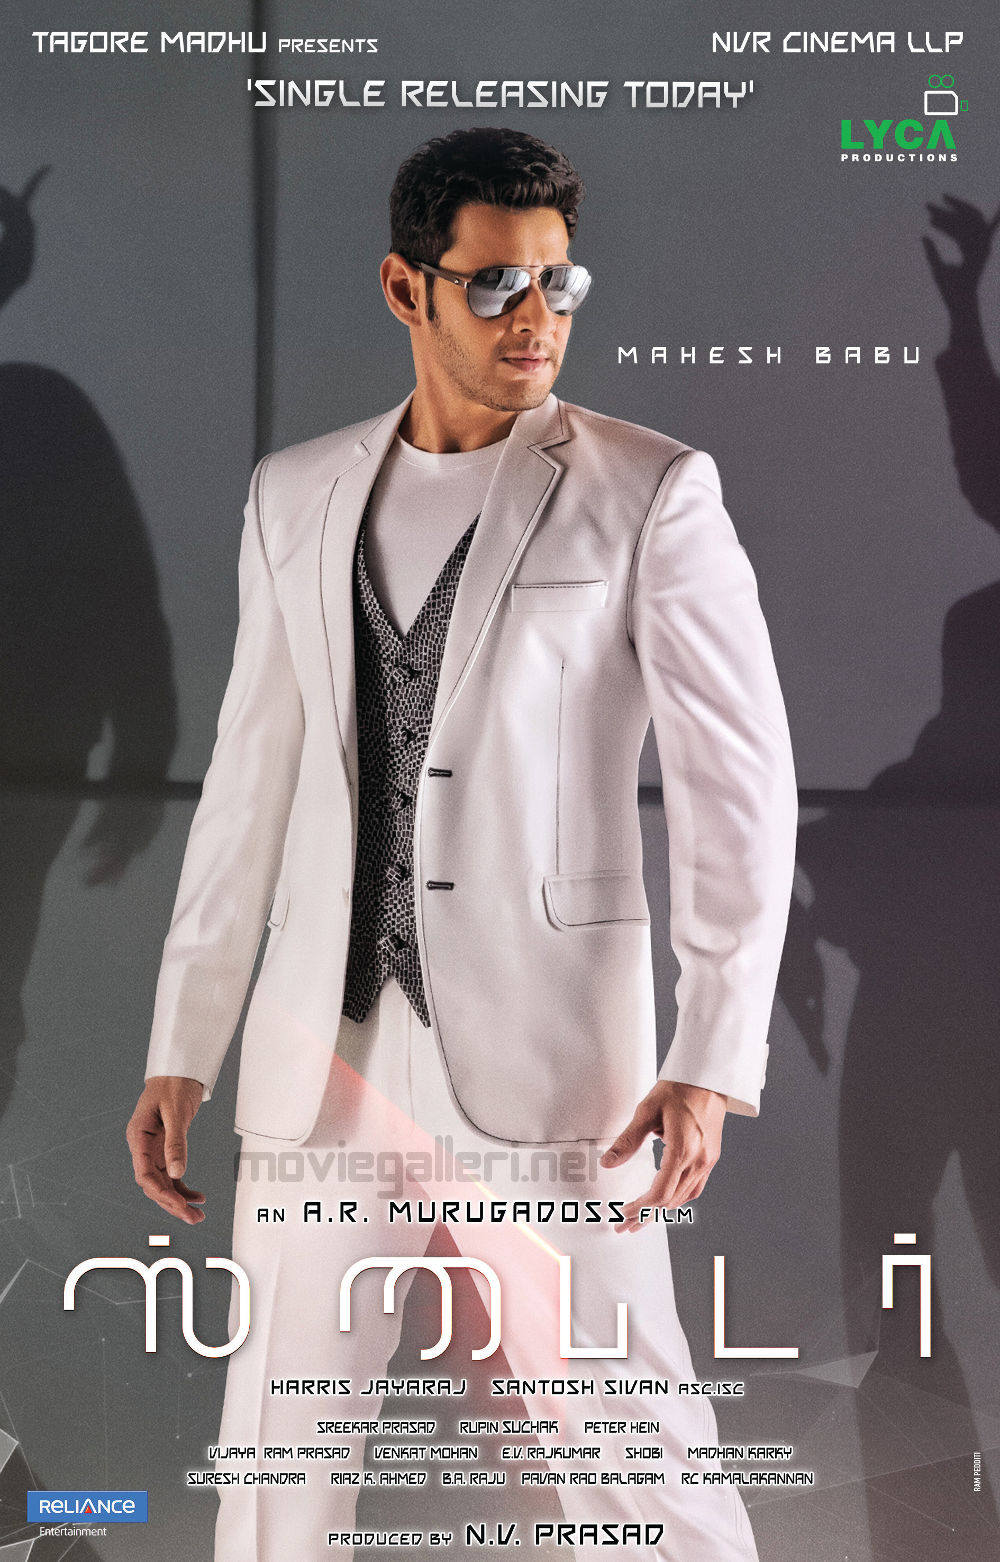 Mahesh Babu's Spyder Movie Single Releasing Today Posters